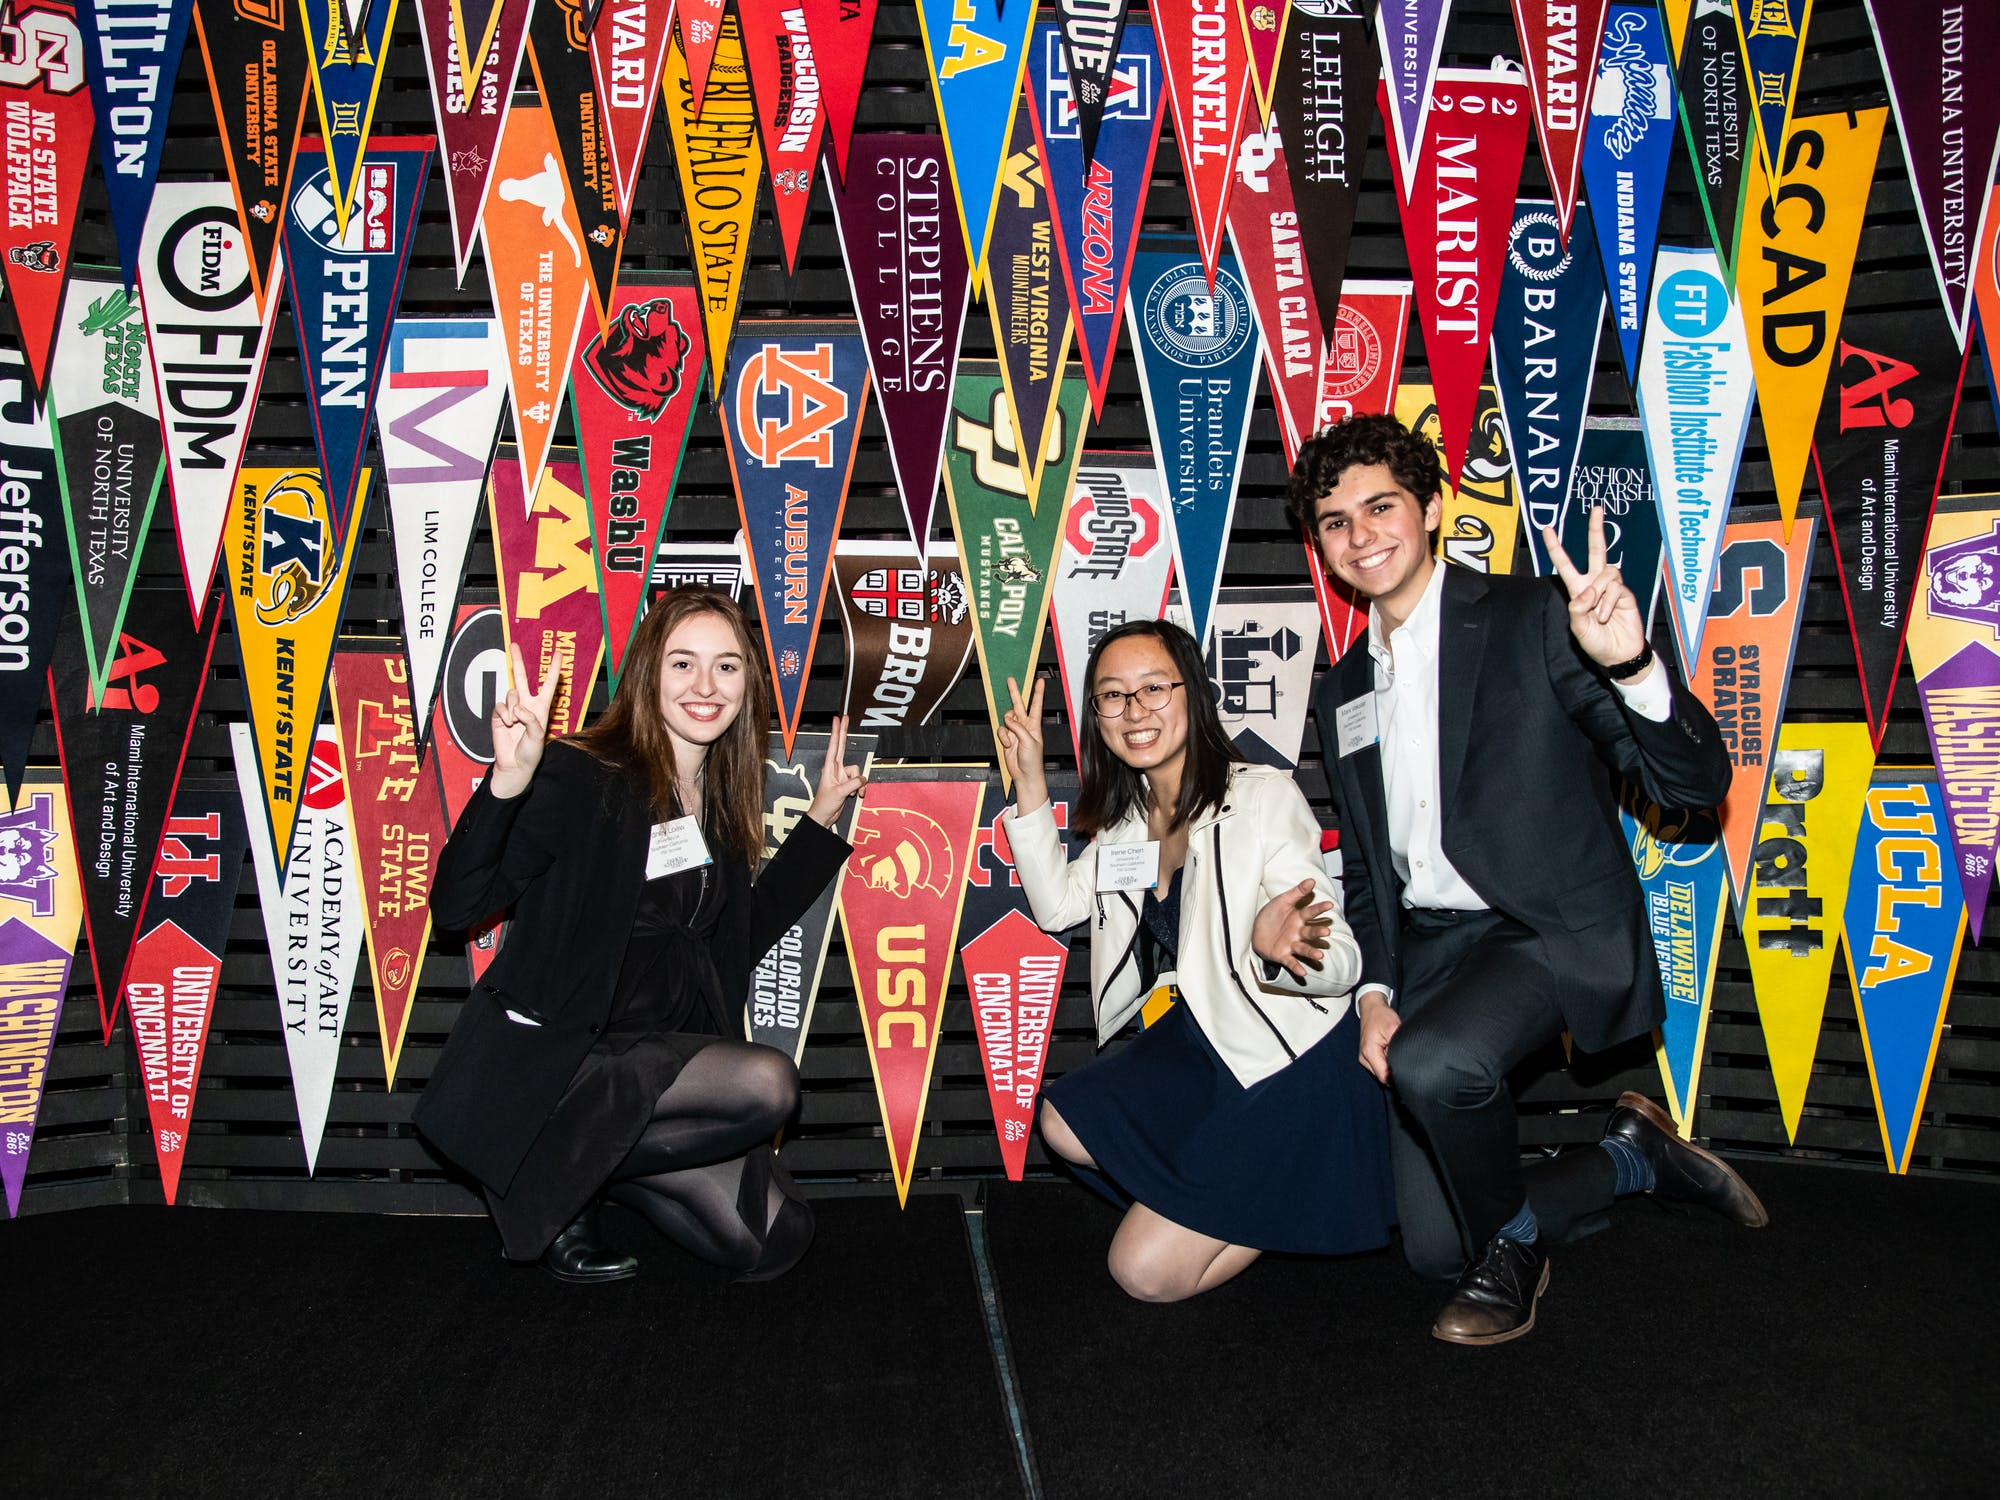 Students standing in front of a wall of school flags